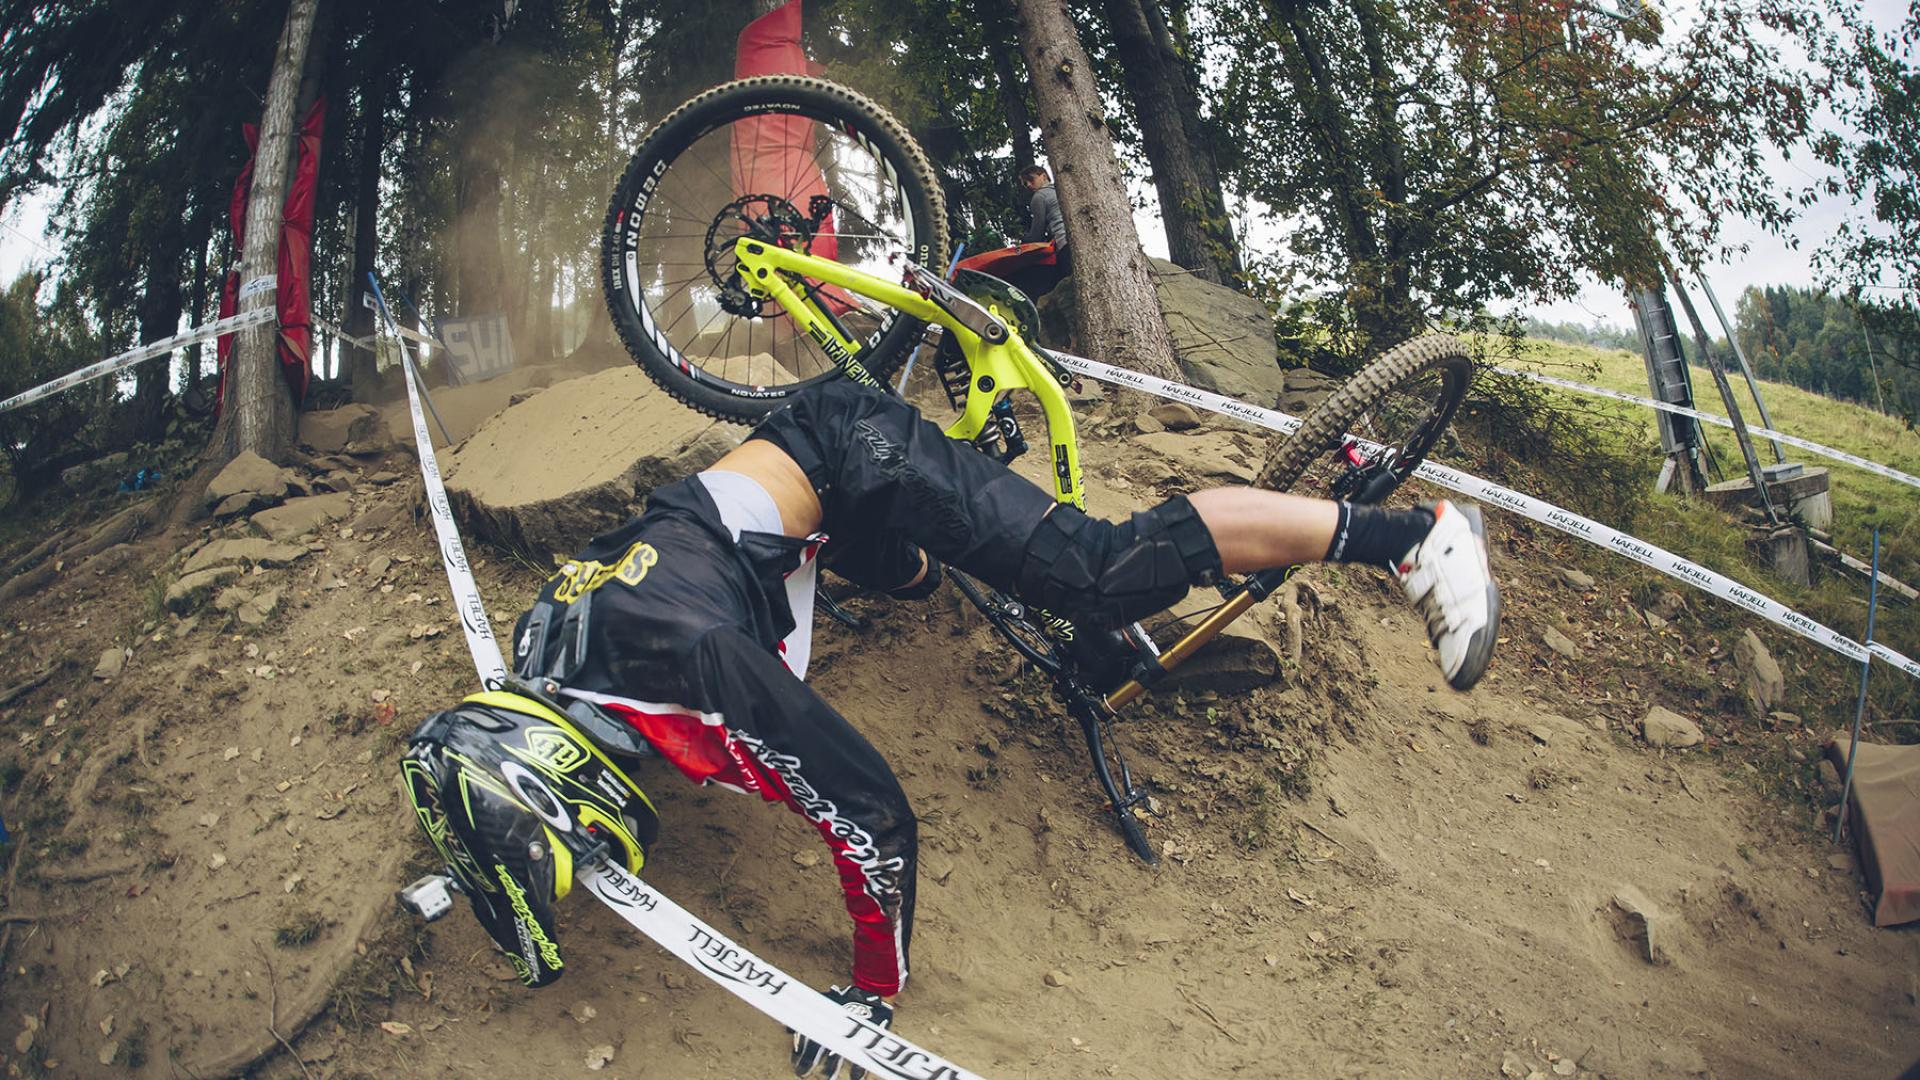 How to Treat Mountain Bike Injuries